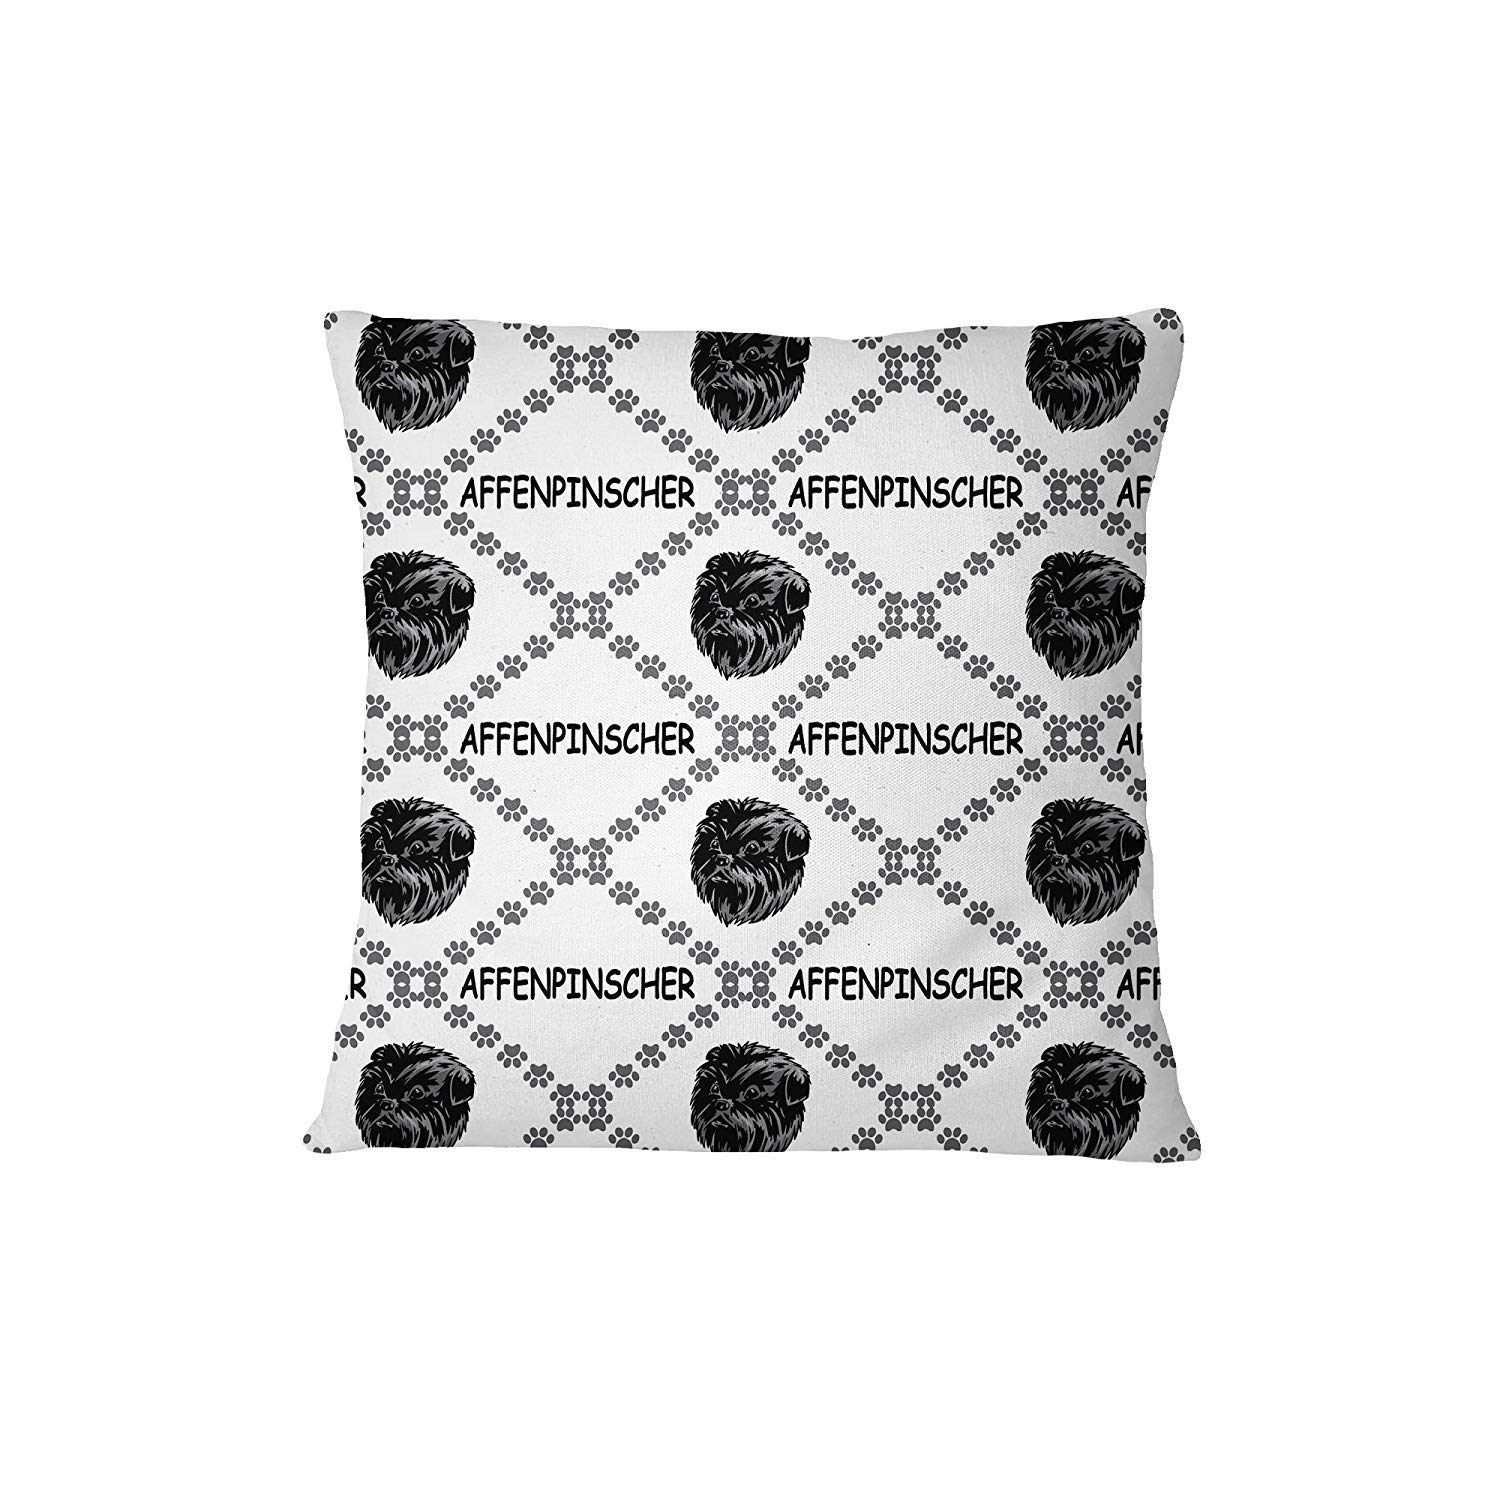 Affenpinscher Dog Paws Sofa Bed Home Decor Pillow Cover 18′ x 18′ Pillow & Cover Set